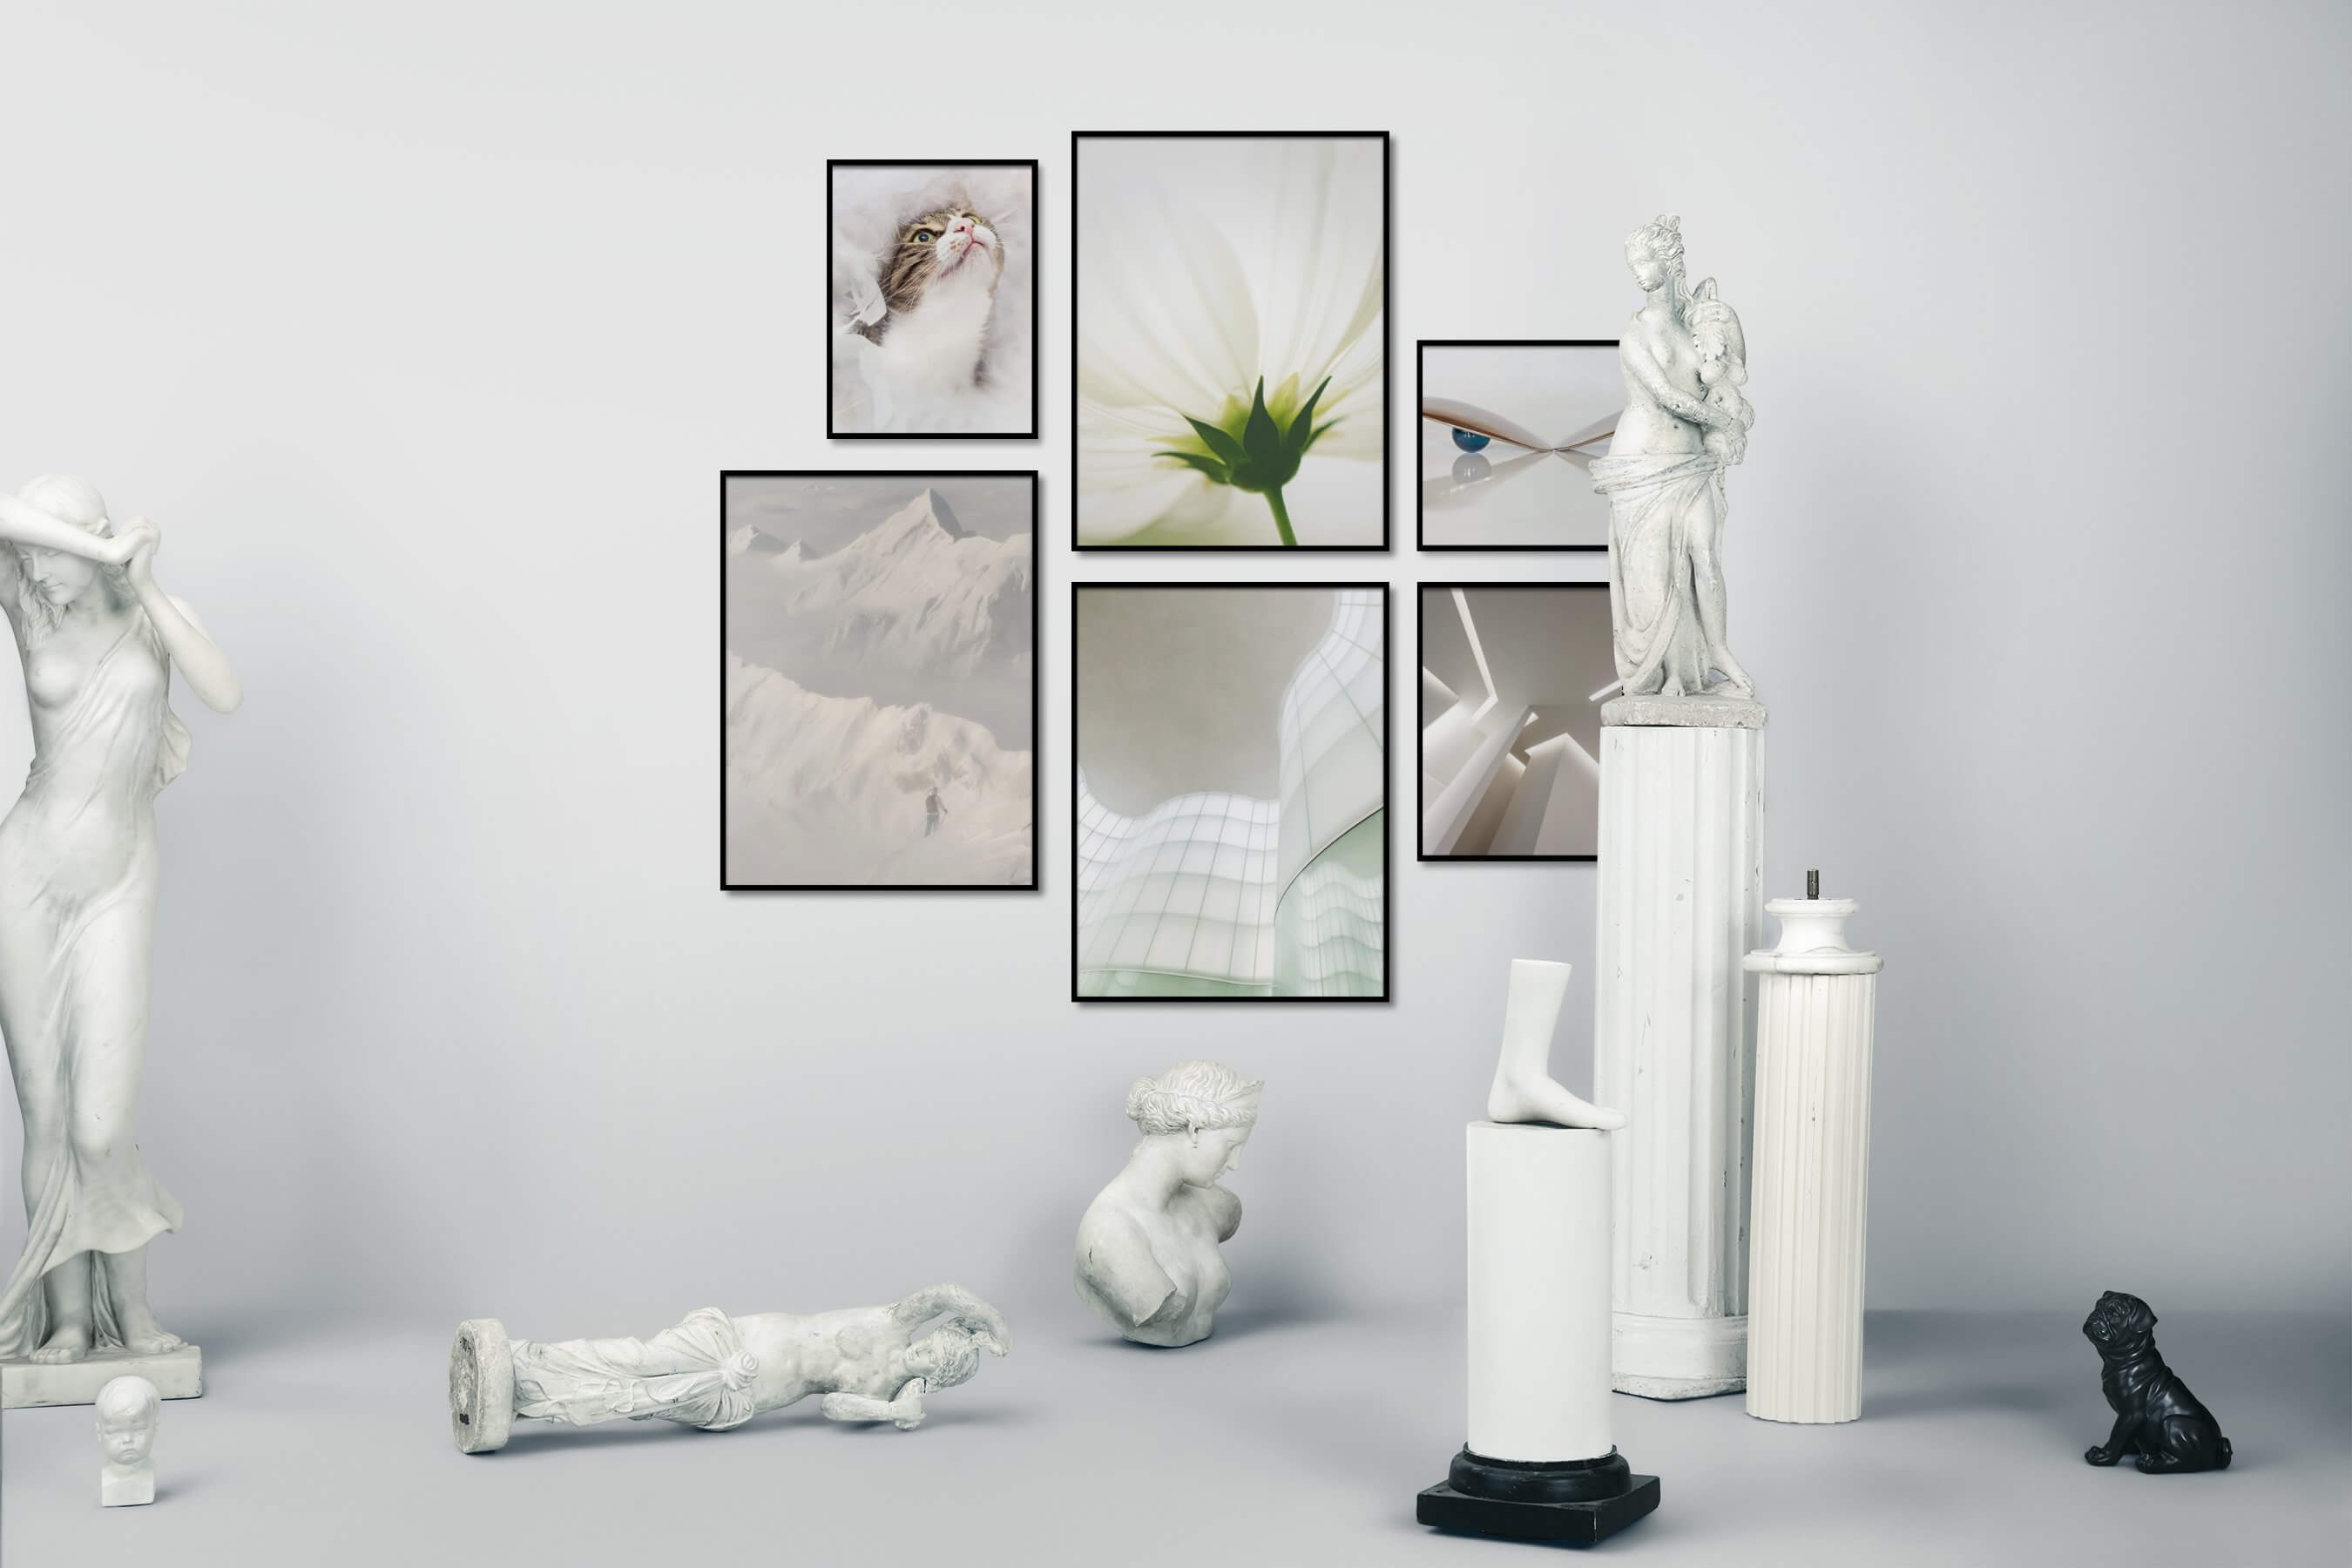 Gallery wall idea with six framed pictures arranged on a wall depicting Animals, Flowers & Plants, Mindfulness, Nature, For the Moderate, and For the Minimalist